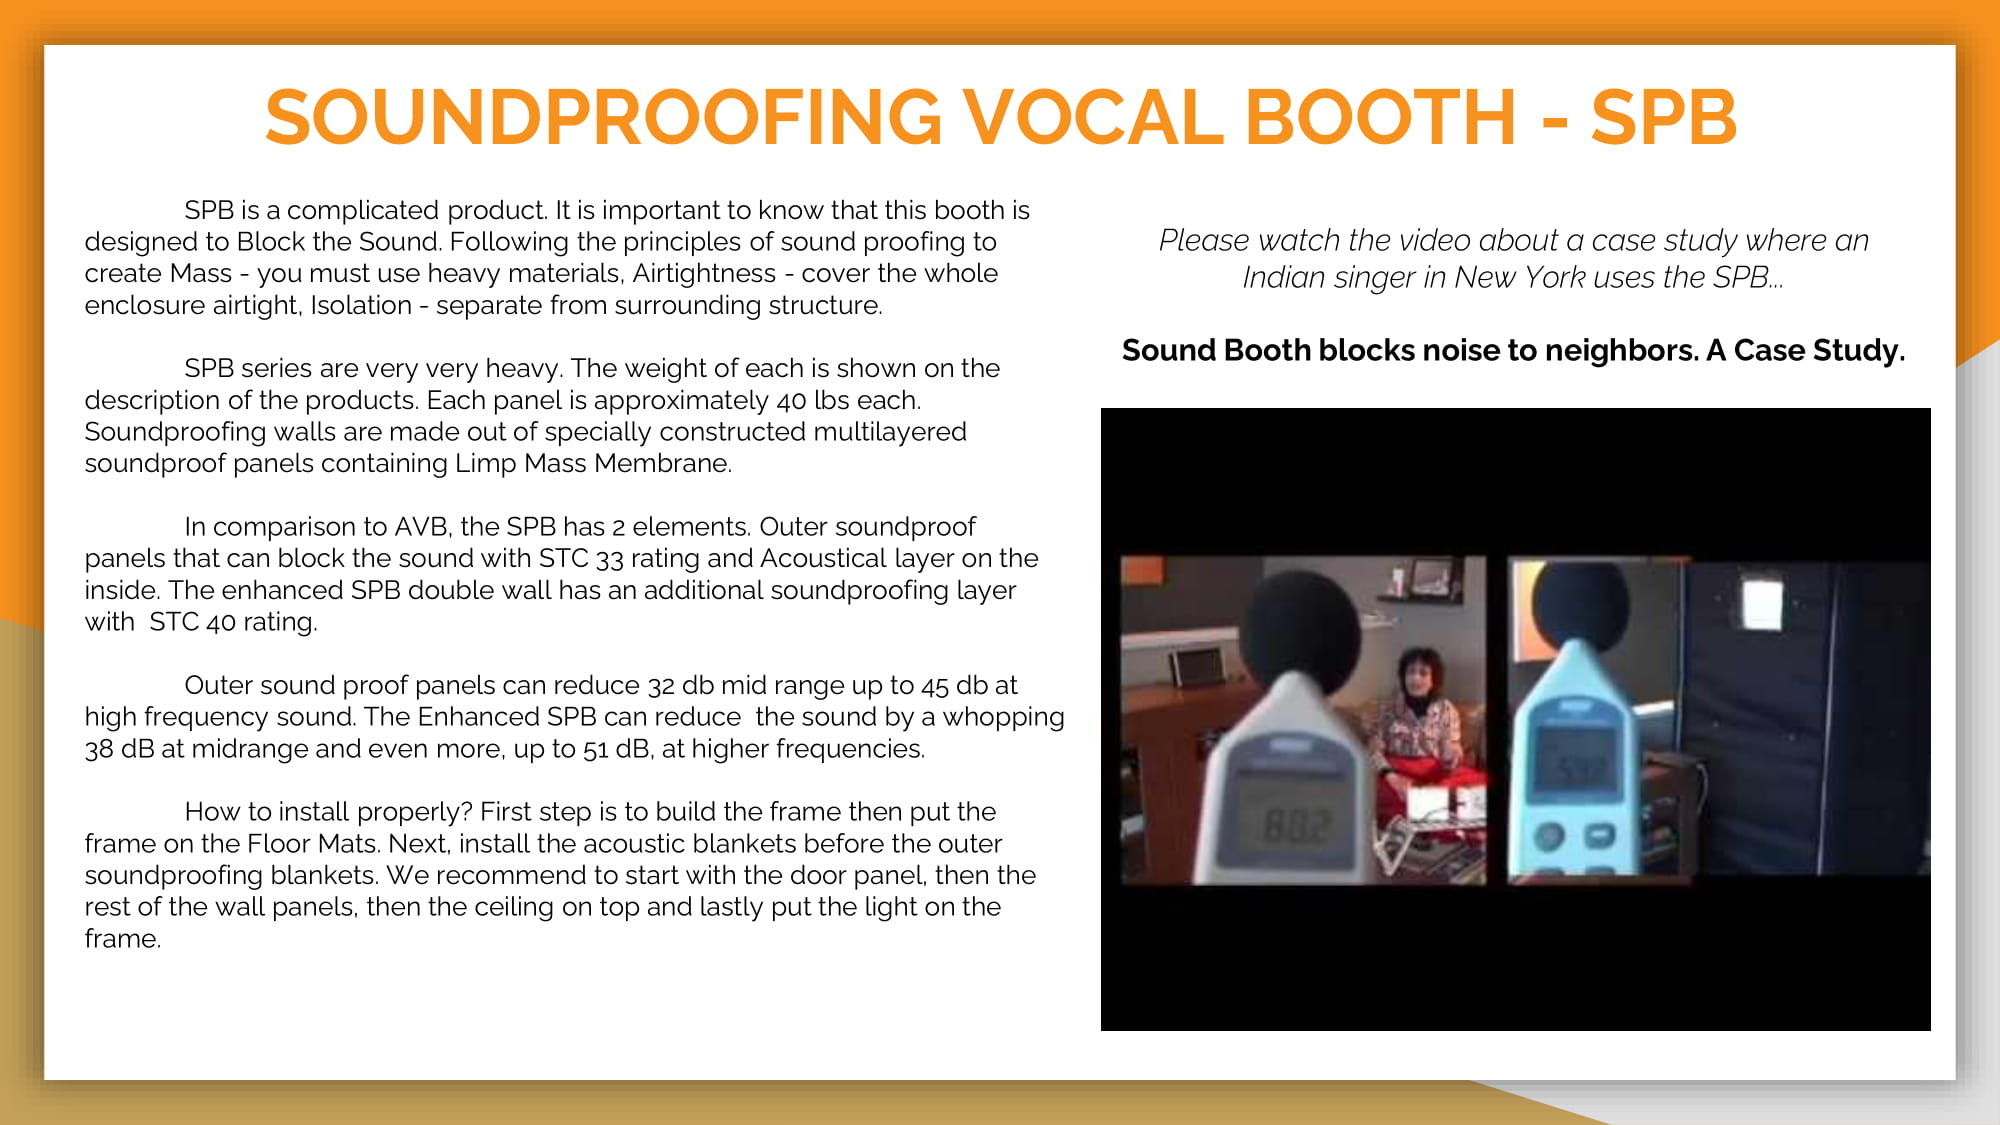 SOUNDPROOFING VOCAL BOOTH -SPB